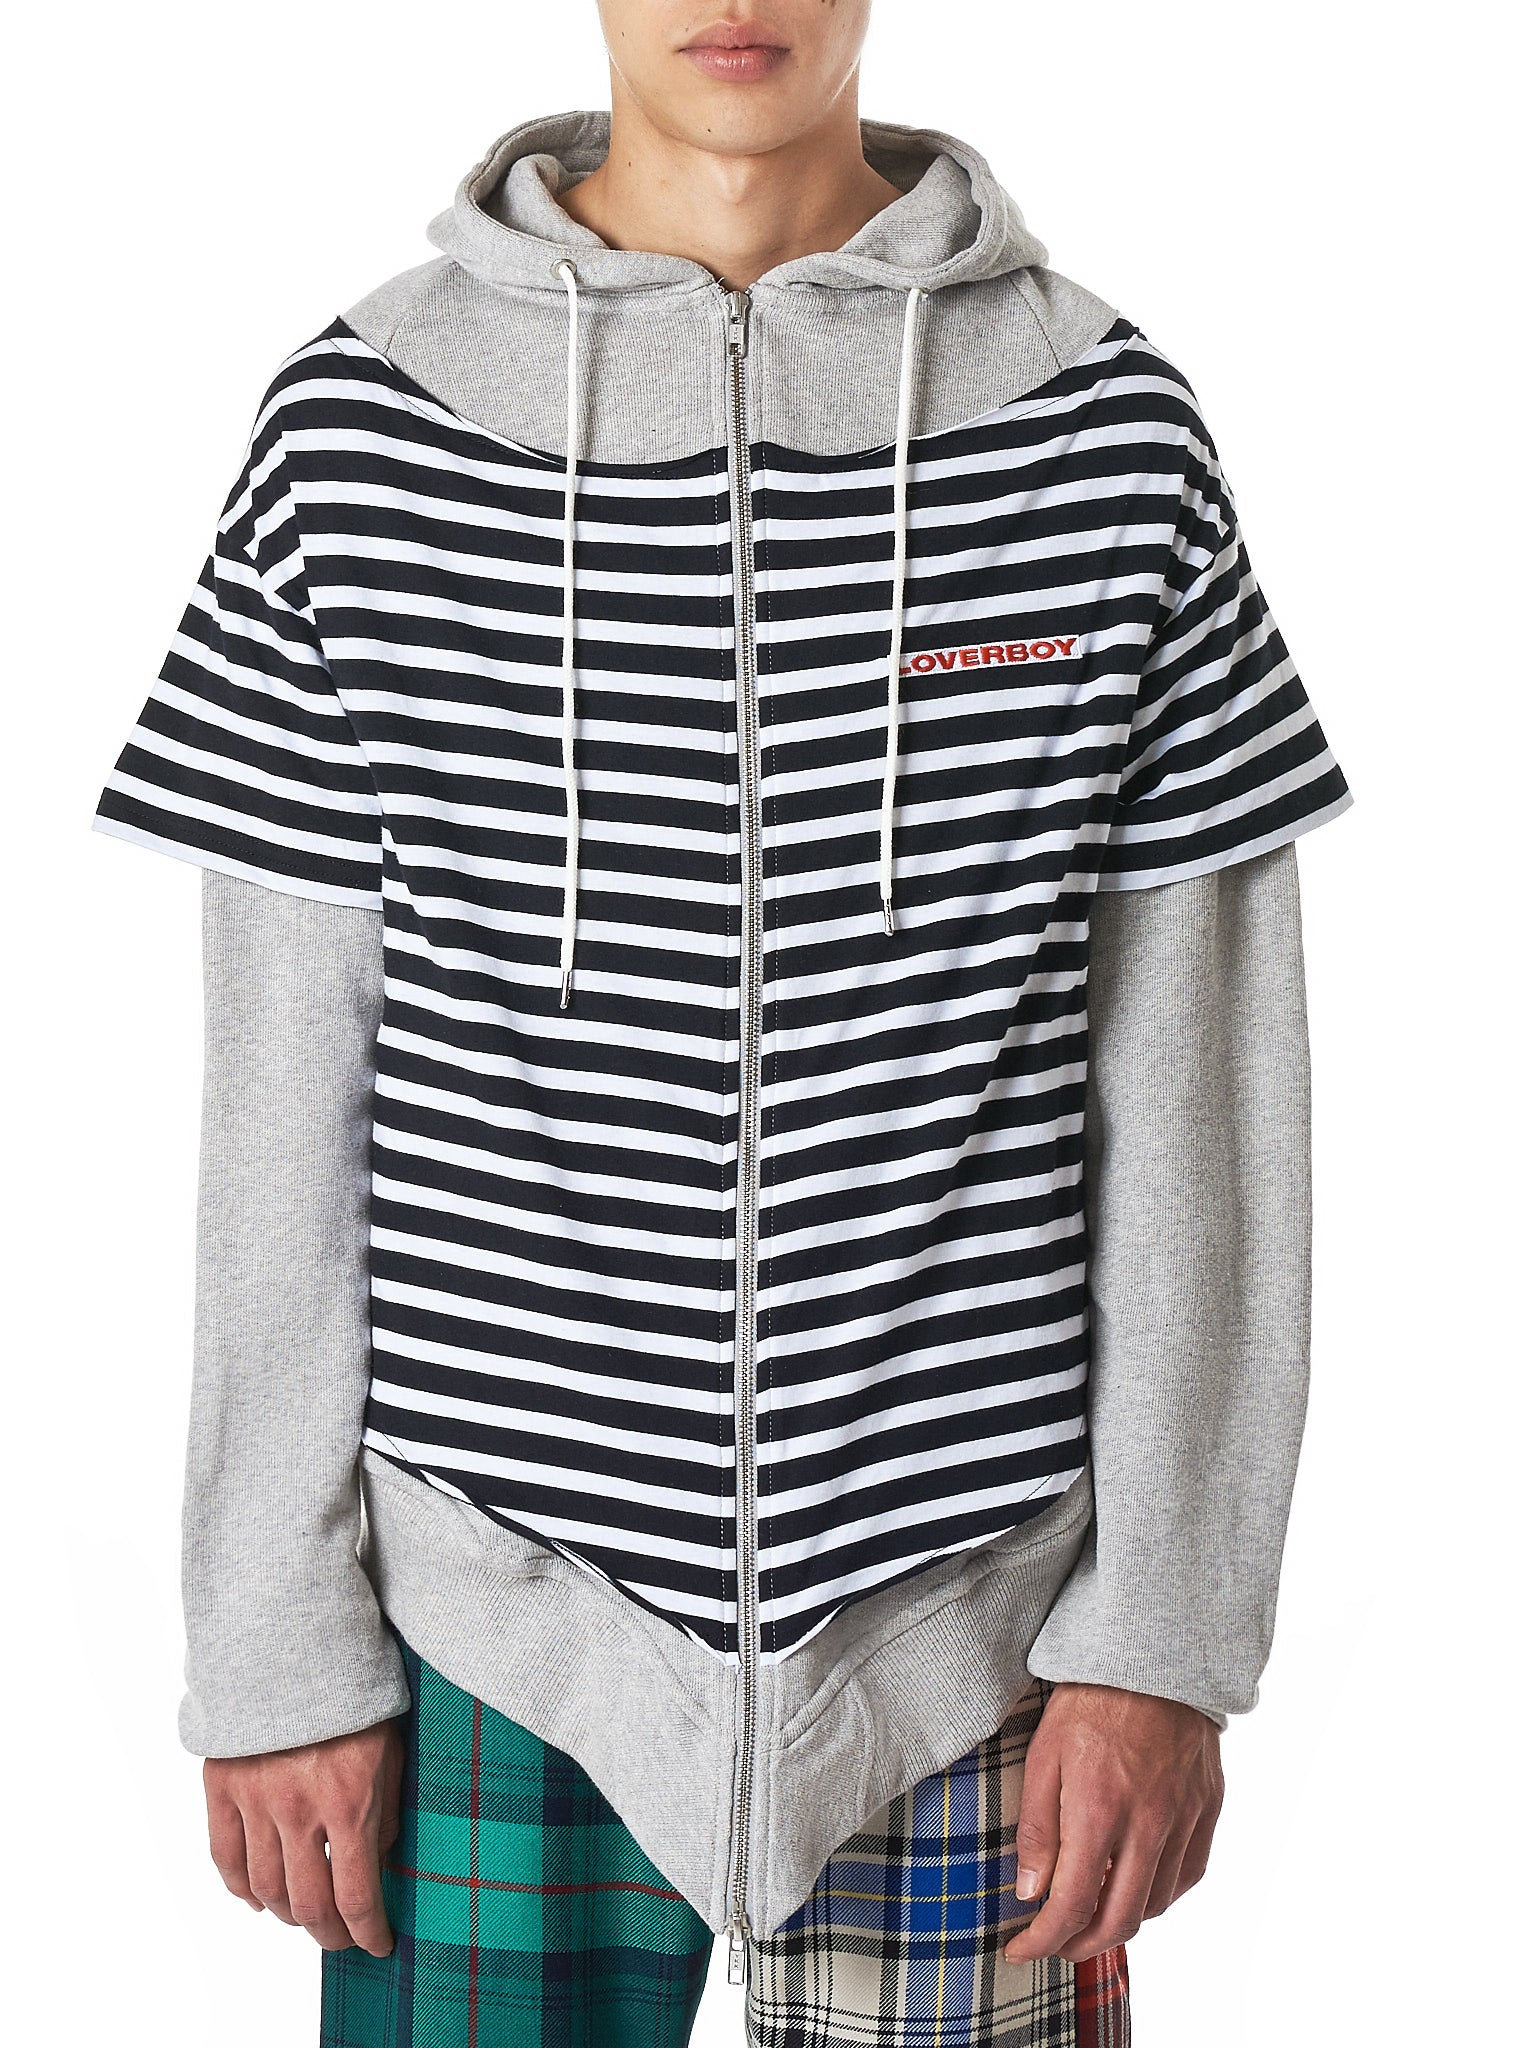 Charles Jeffrey Loverboy Striped Hoodie - Hlorenzo Front